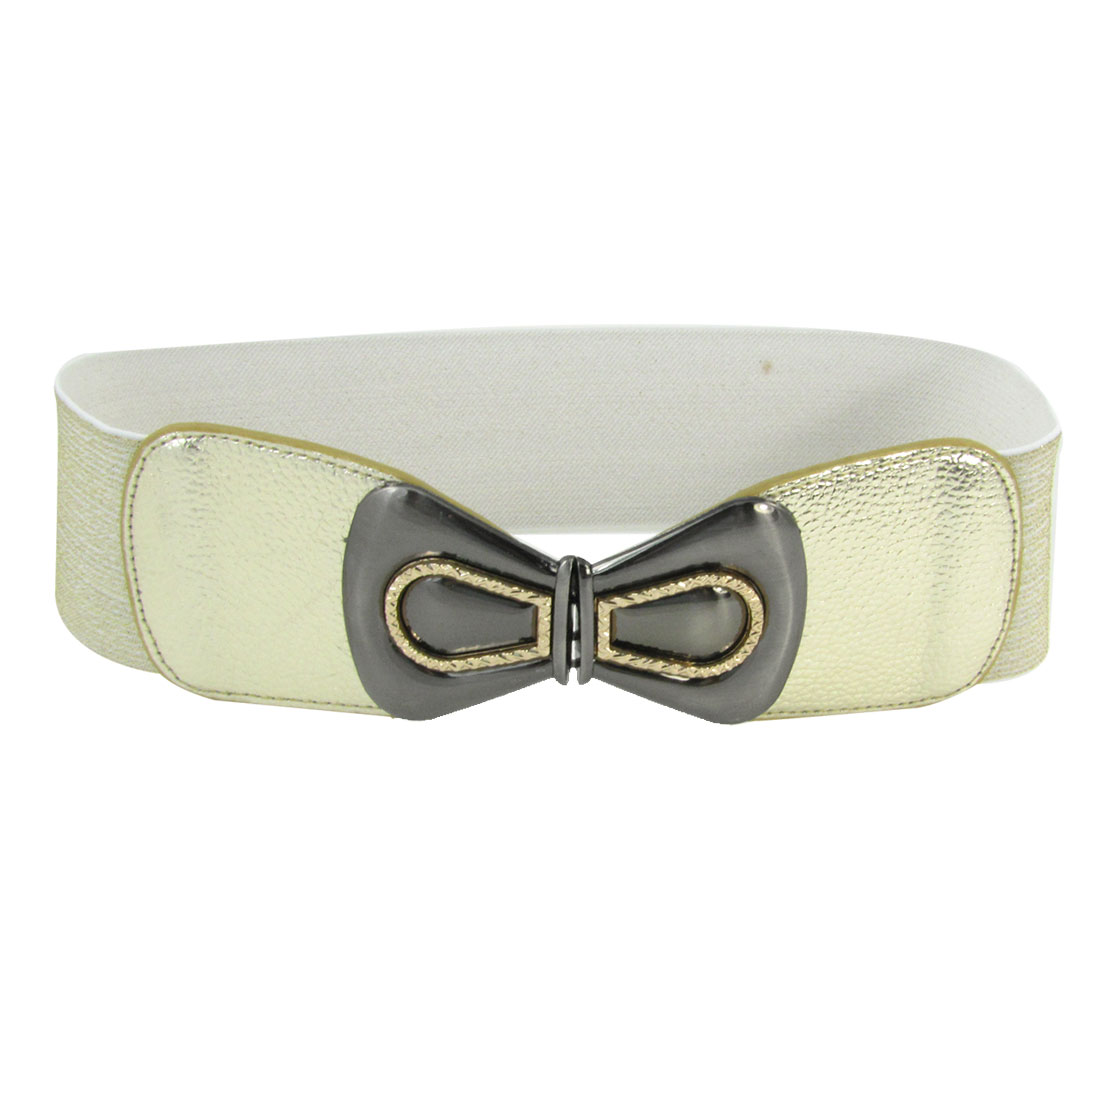 Gray Bowknot Shape Metal Interlock Buckle Gold Tone Elastic Textured Waistbelt